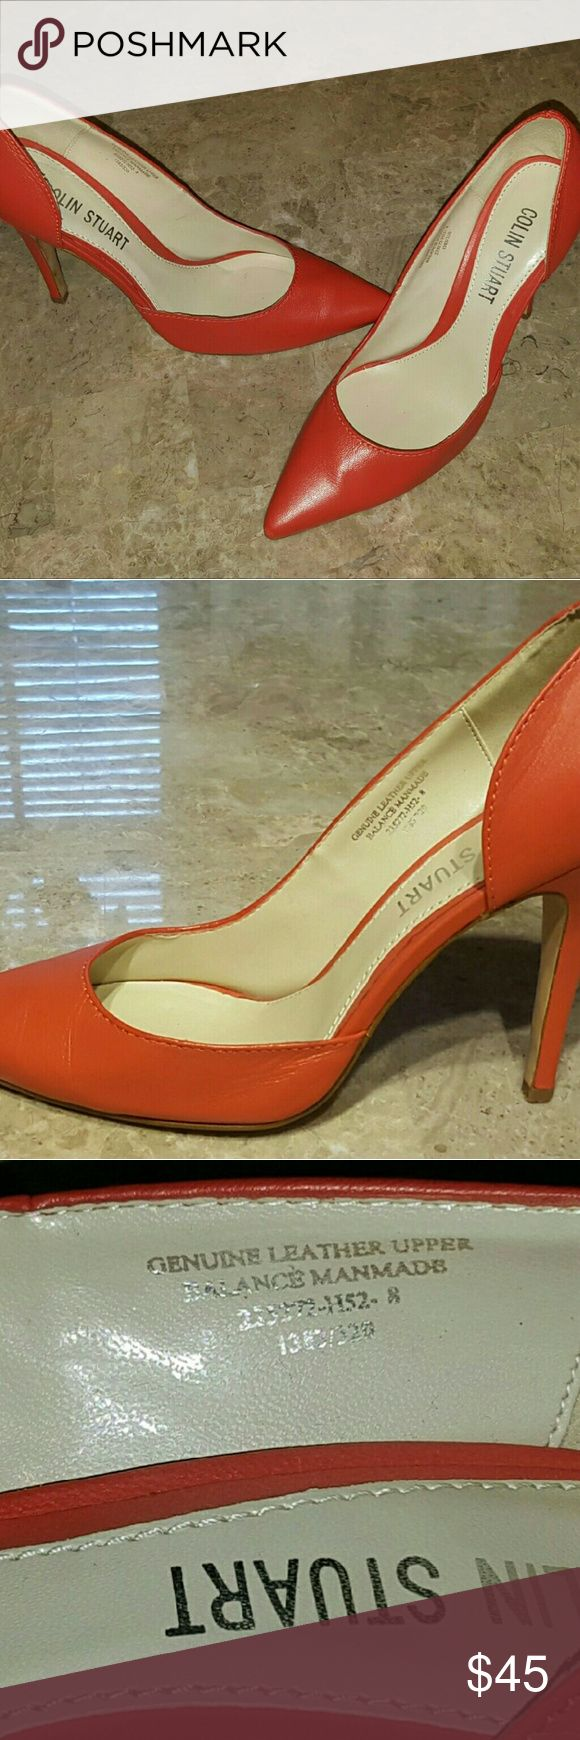 Colin Stuart for Victoria's Secret 8m Orange Heels Slip into these bright orange stilettos and add a pop of color to your outfit...the perfect pair for your vintage or modern look, these heels never go out of style! Size 8m, genuine leather upper. Only worn once and only selling because they no longer fit after baby :) Colin Stuart Shoes Heels